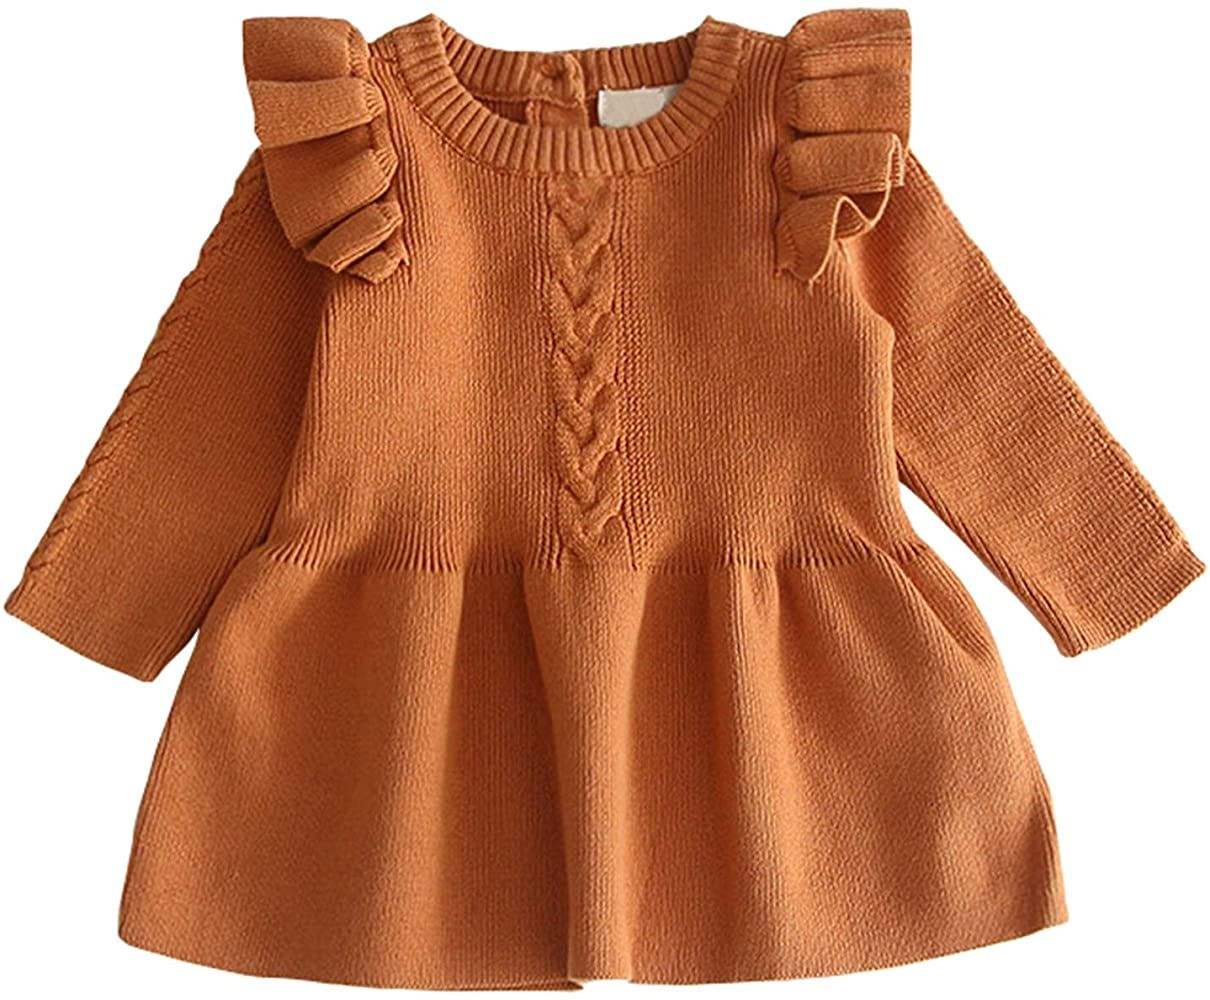 Amazon Com Baby Girl Ruffle Knit Dress 1st 2nd Birthday Long Sleeve Knitted Tulle Tutu Dresses For W In 2020 Knit Sweater Dress Winter Warm Outfits Toddler Knit Dress [ 1000 x 1210 Pixel ]